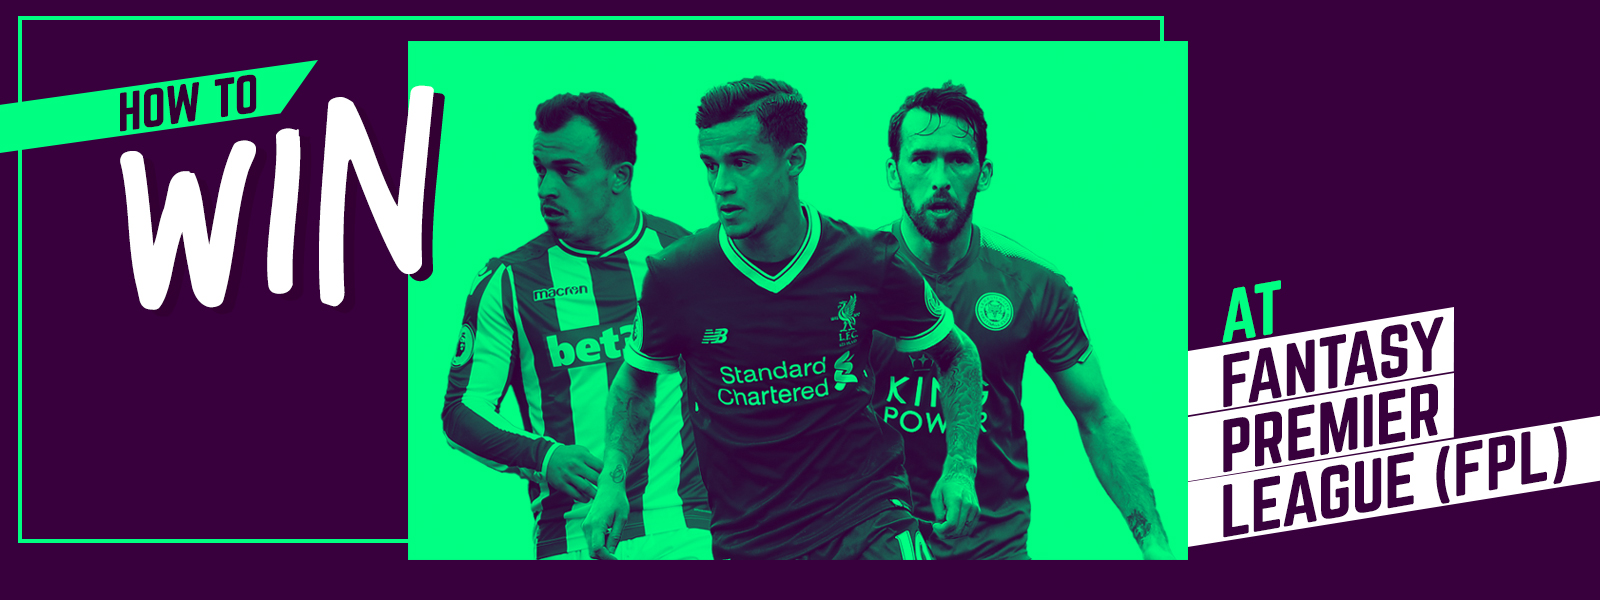 How To Win At Fantasy Premier League